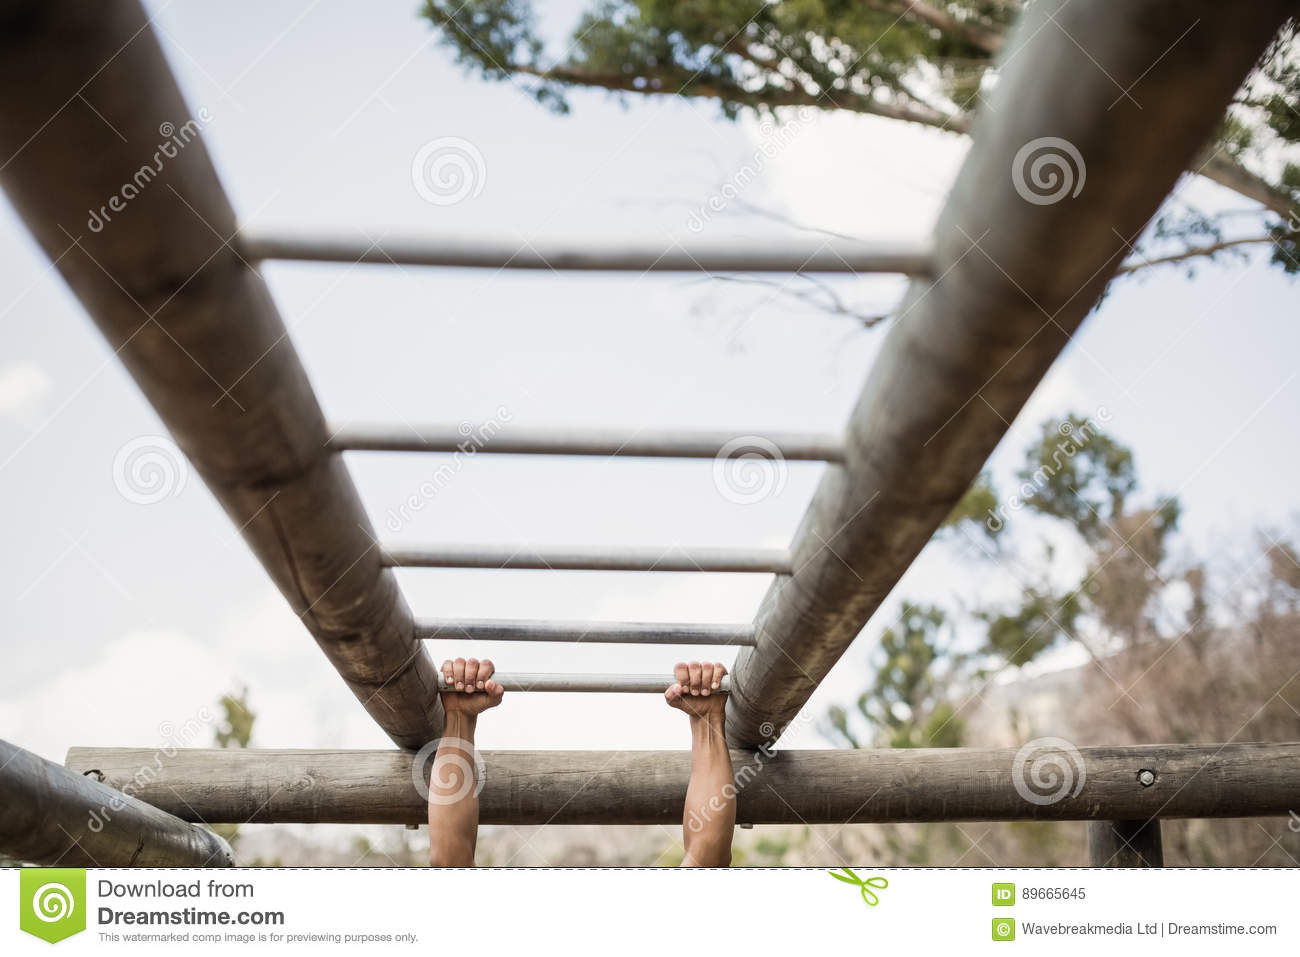 Download Fit Man Climbing Monkey Bars During Obstacle Course Stock Image - Image of camp, activity: 89665645